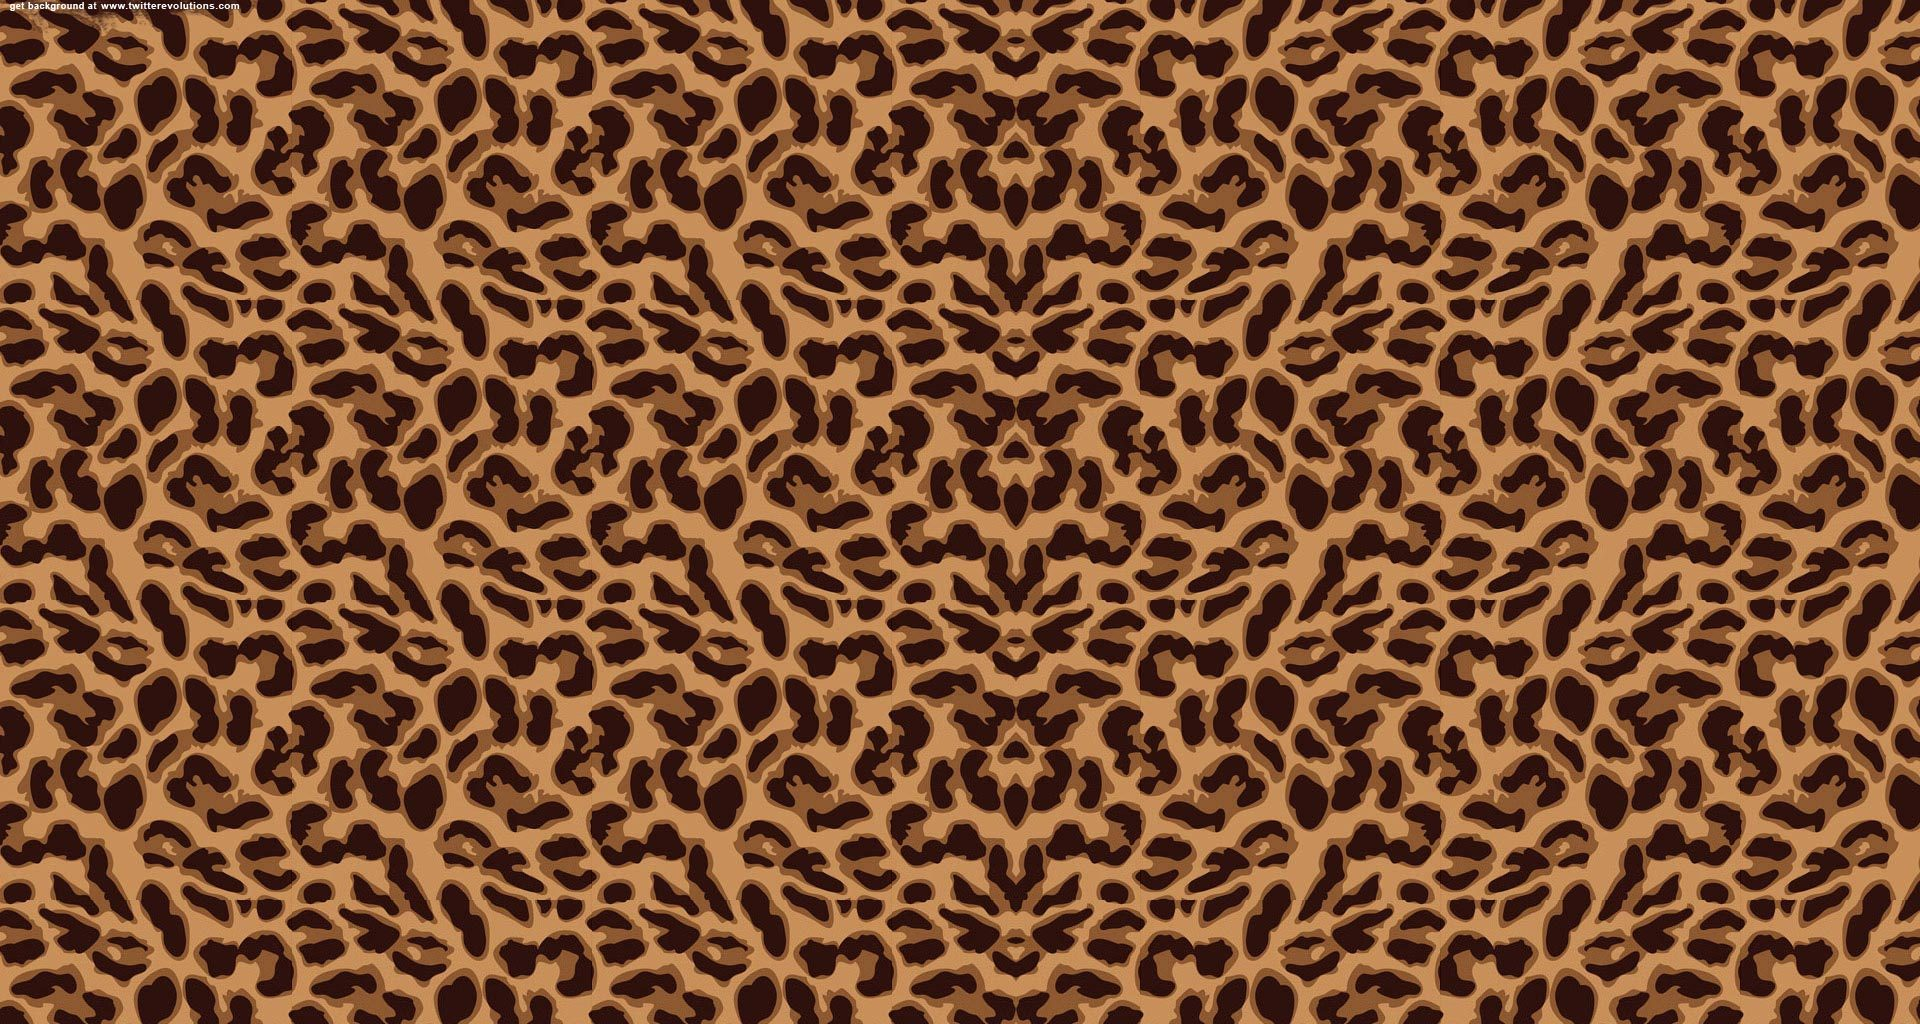 leopard print backgrounds for twitter